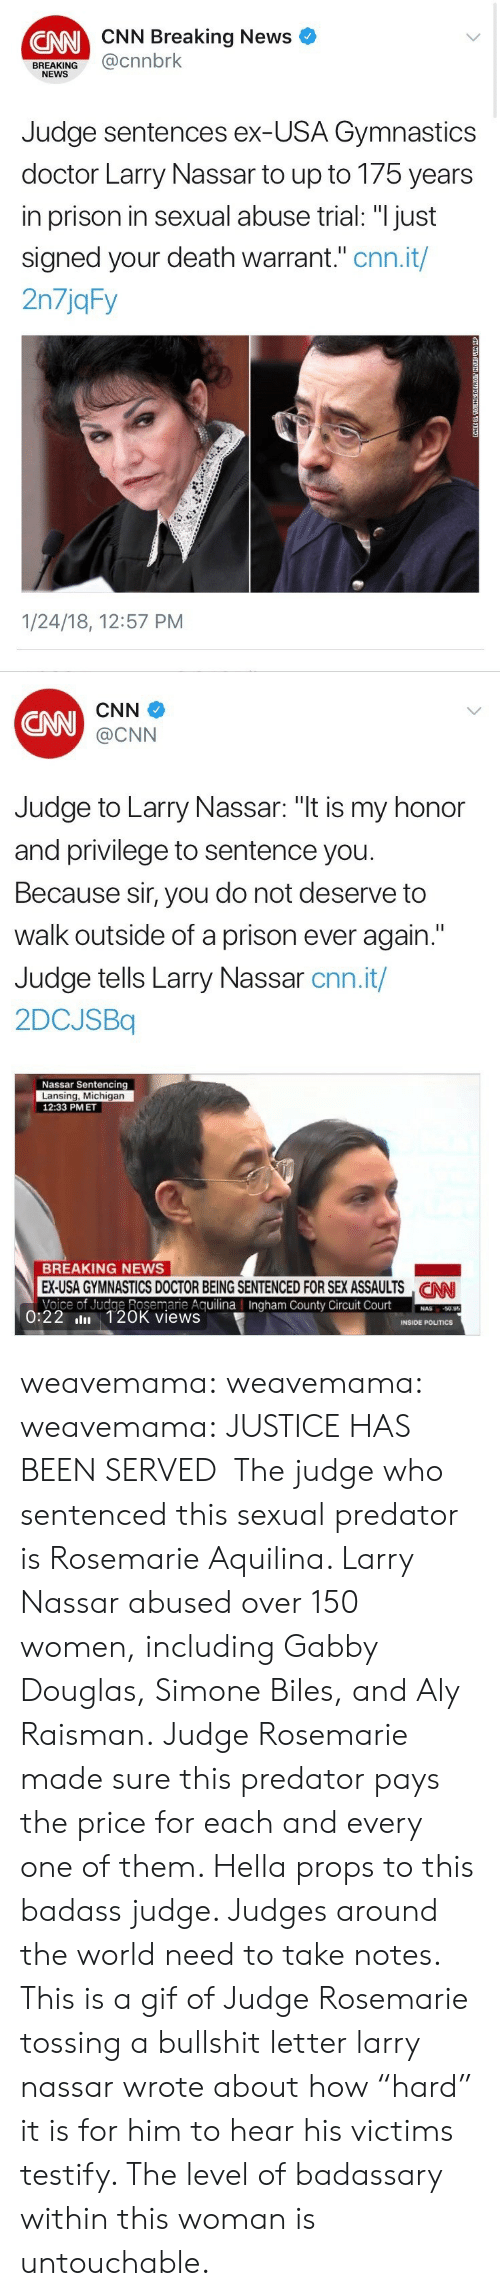 """simone biles: CNN Breaking News  CNN  BREAKING@cnnbrk  NEWS  Judge sentences ex-USA Gymnastics  doctor Larry Nassar to up to 175 years  in prison in sexual abuse trial: """"I just  signed your death warrant."""" cnn.it/  2n7jqFy  1/24/18, 12:57 PM   CNN  CNN  @CNN  Judge to Larry Nassar: """"t is my honor  and privilege to sentence you  Because sir, you do not deserve to  walk outside of a prison ever again.""""  Judge tells Larry Nassar cnn.it/  2DCJSBq  Nassar Sentencing  Lansing, Michigan  12:33 PMET  BREAKING NEWS  EX-USA GYMNASTICS DOCTOR BEING SENTENCED FOR SEX ASSAULTS NN  Voice of Judge Rosemarie AguilinaIngham County Circuit Court0  CAN  County  50.95  0:22 